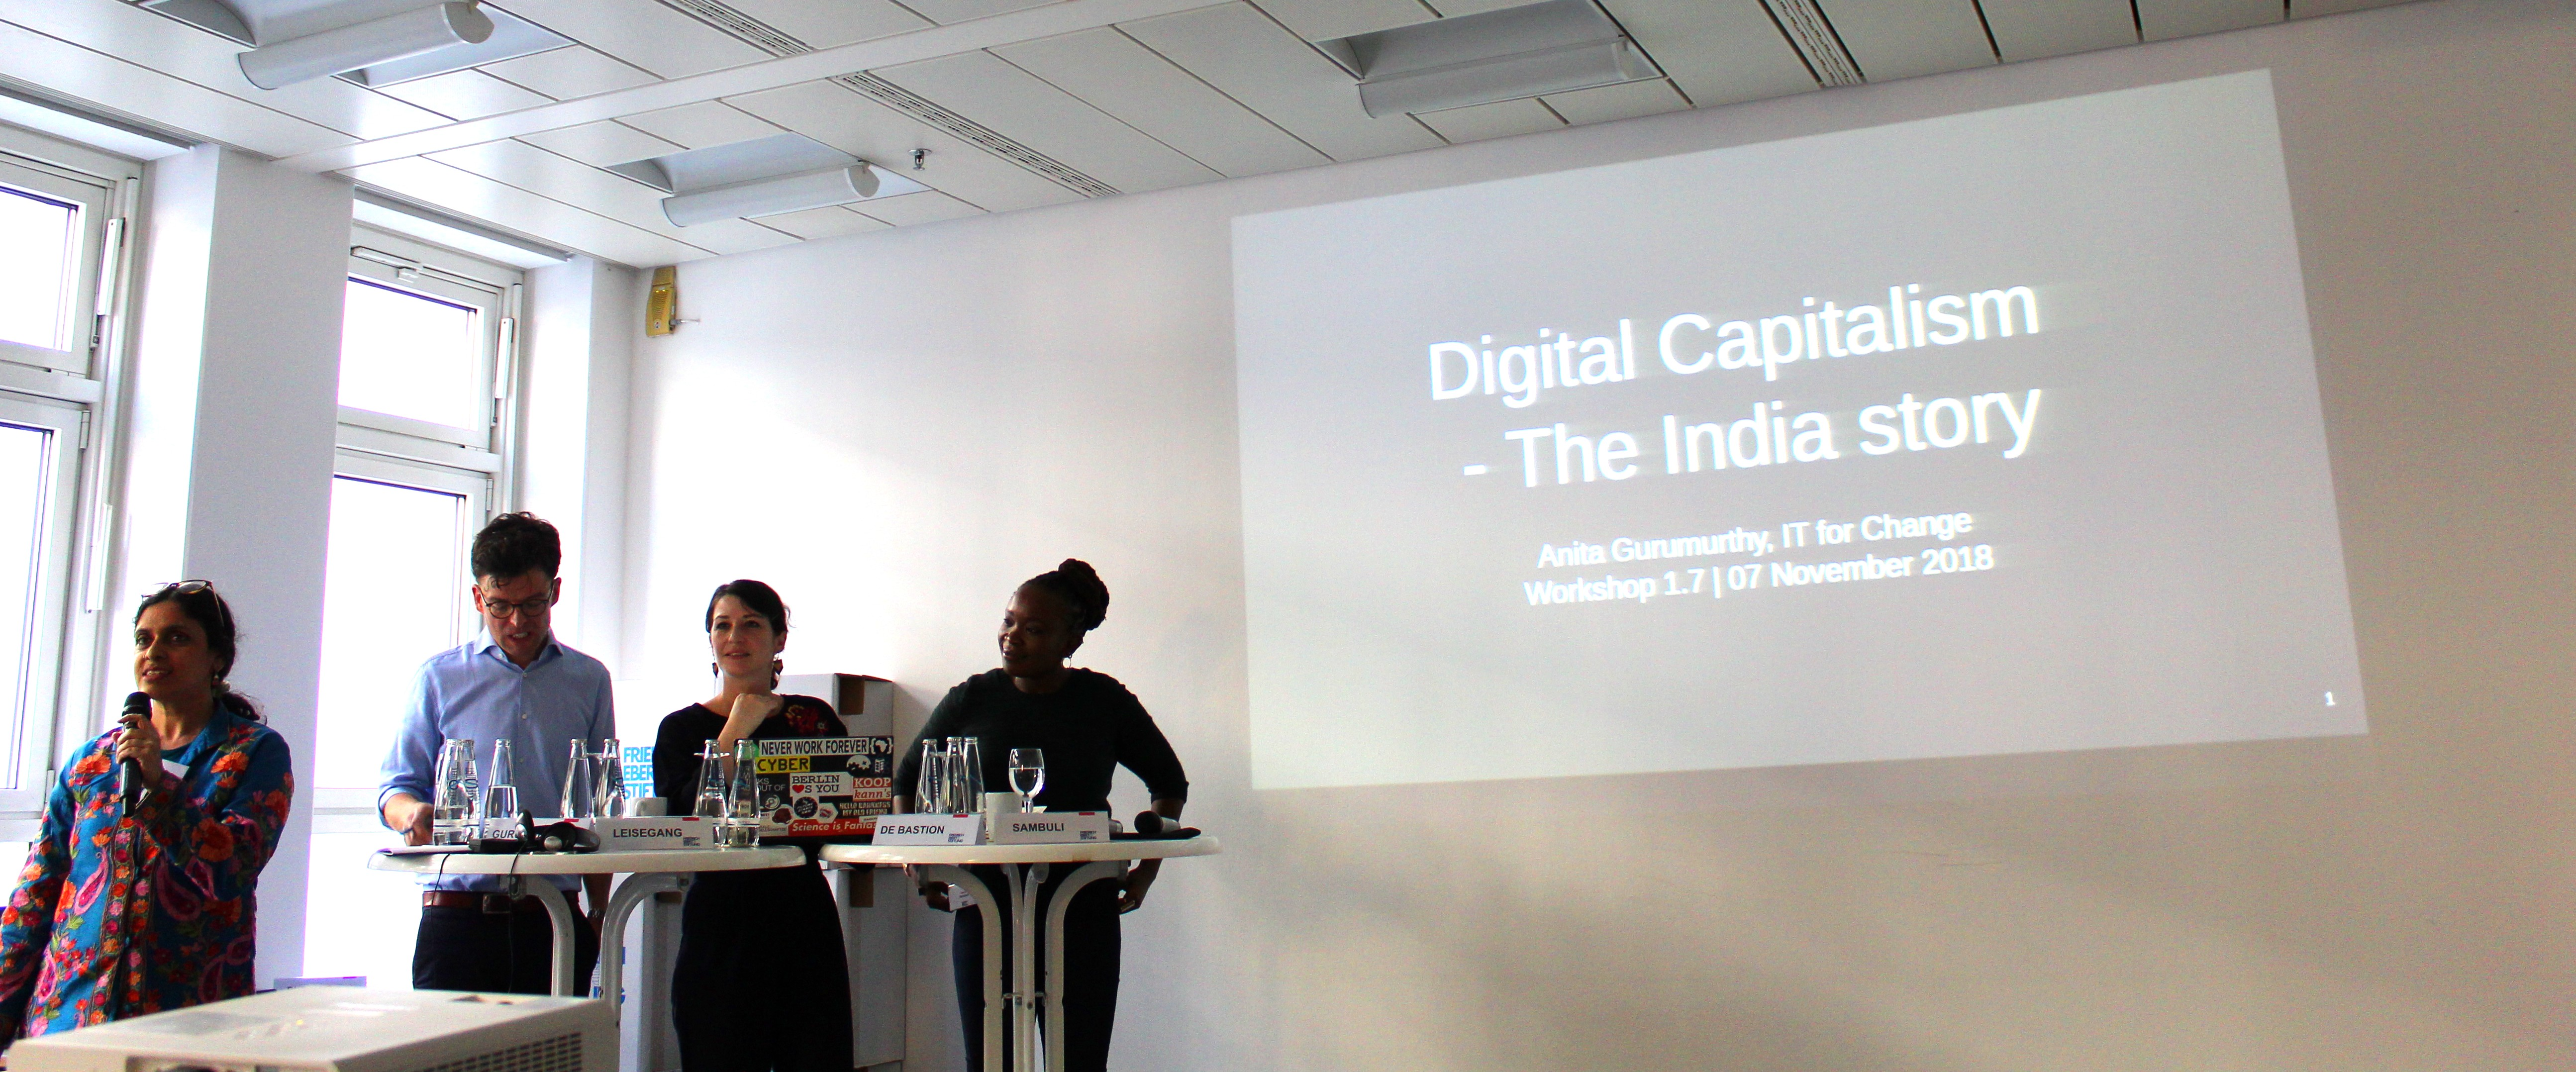 Digital Capitalism: The India story